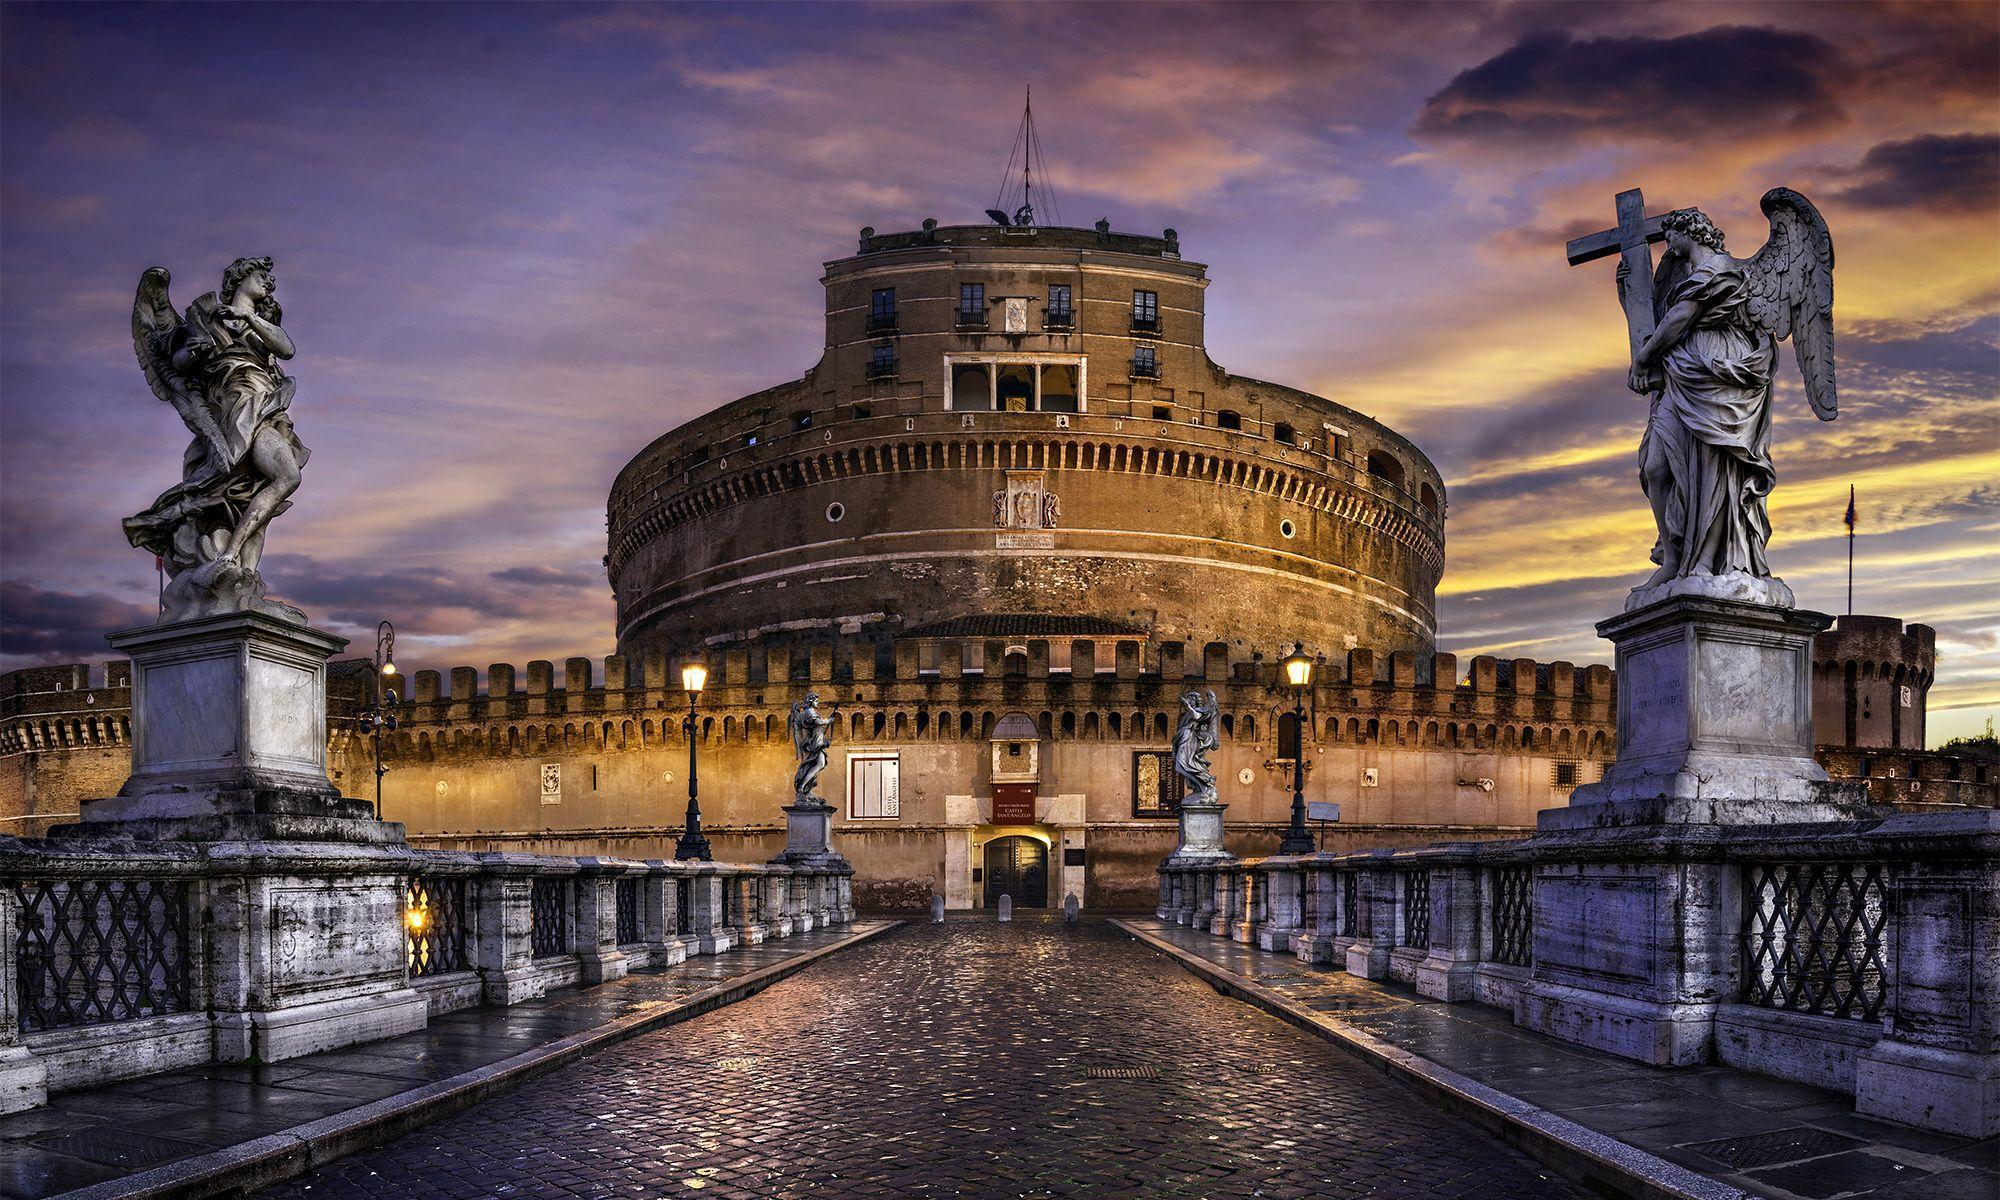 Castel Sant Angelo HD Wallpaper For Desktop in High Quality